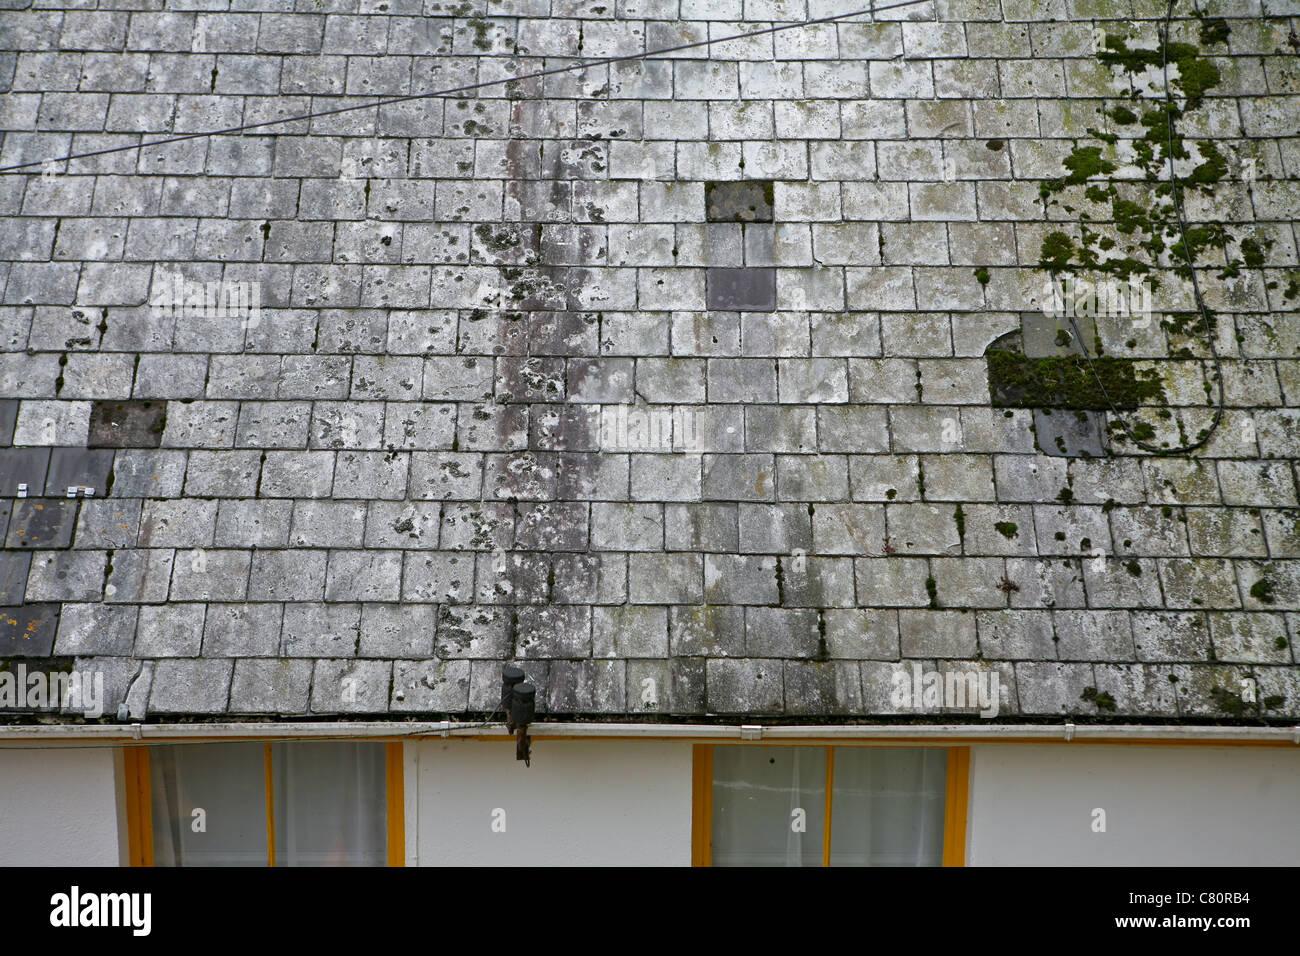 discolored roof tiles